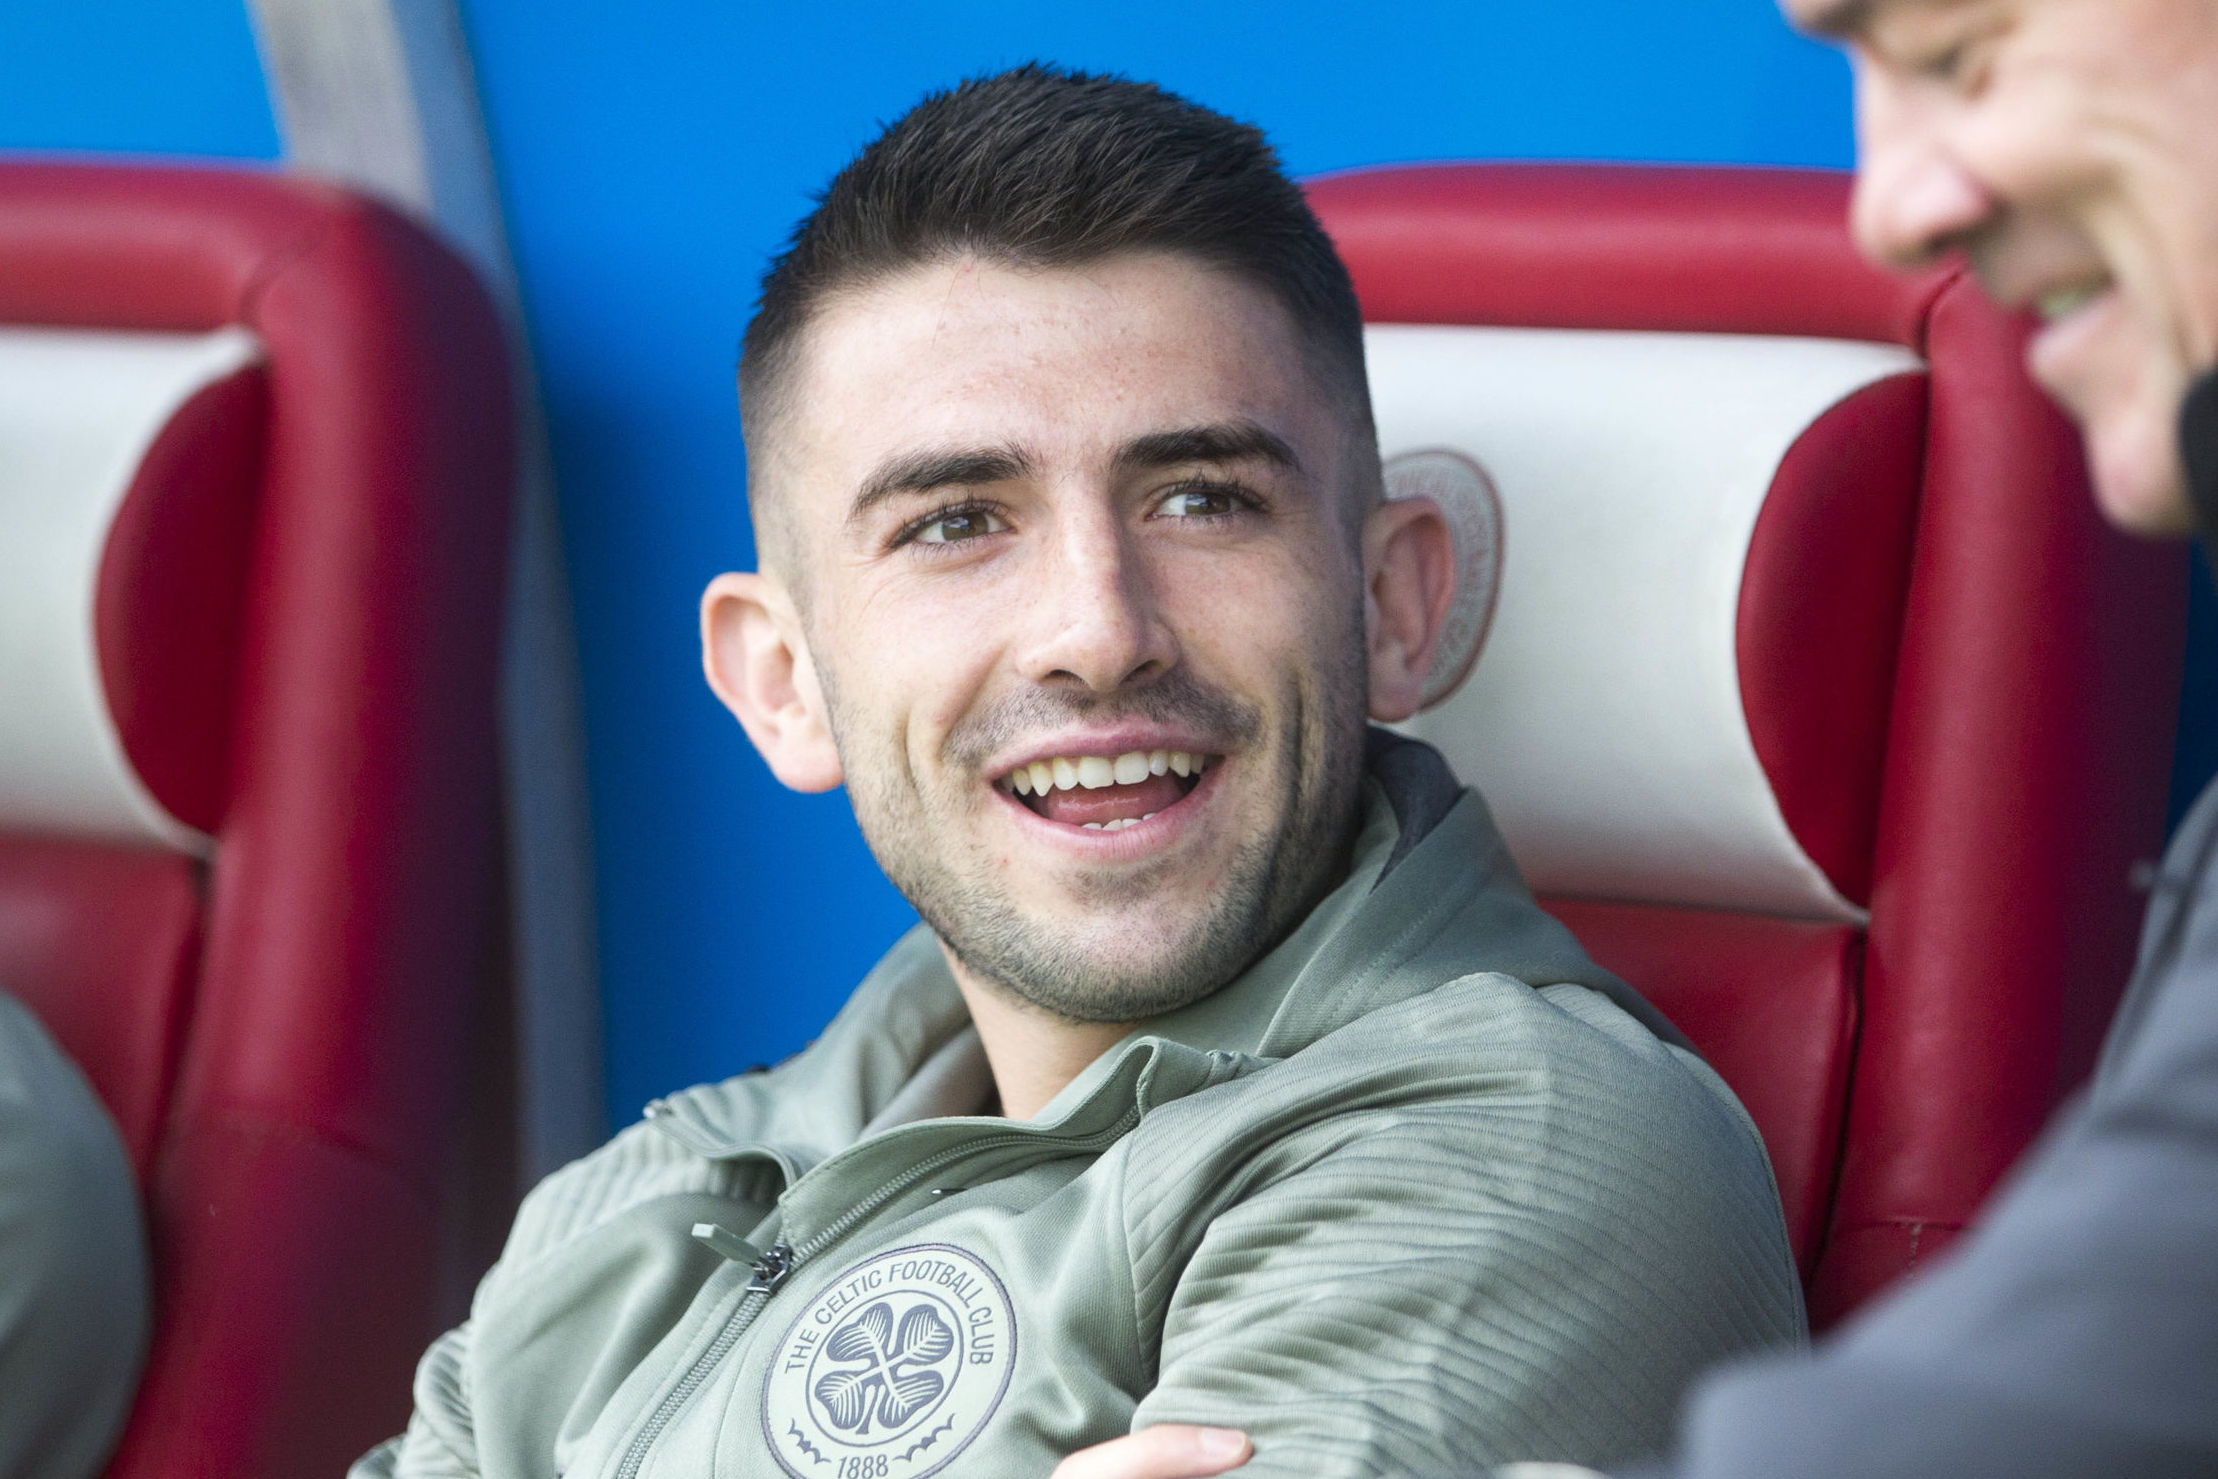 Greg Taylor poised to make Celtic debut at long last - against his former club Kilmarnock